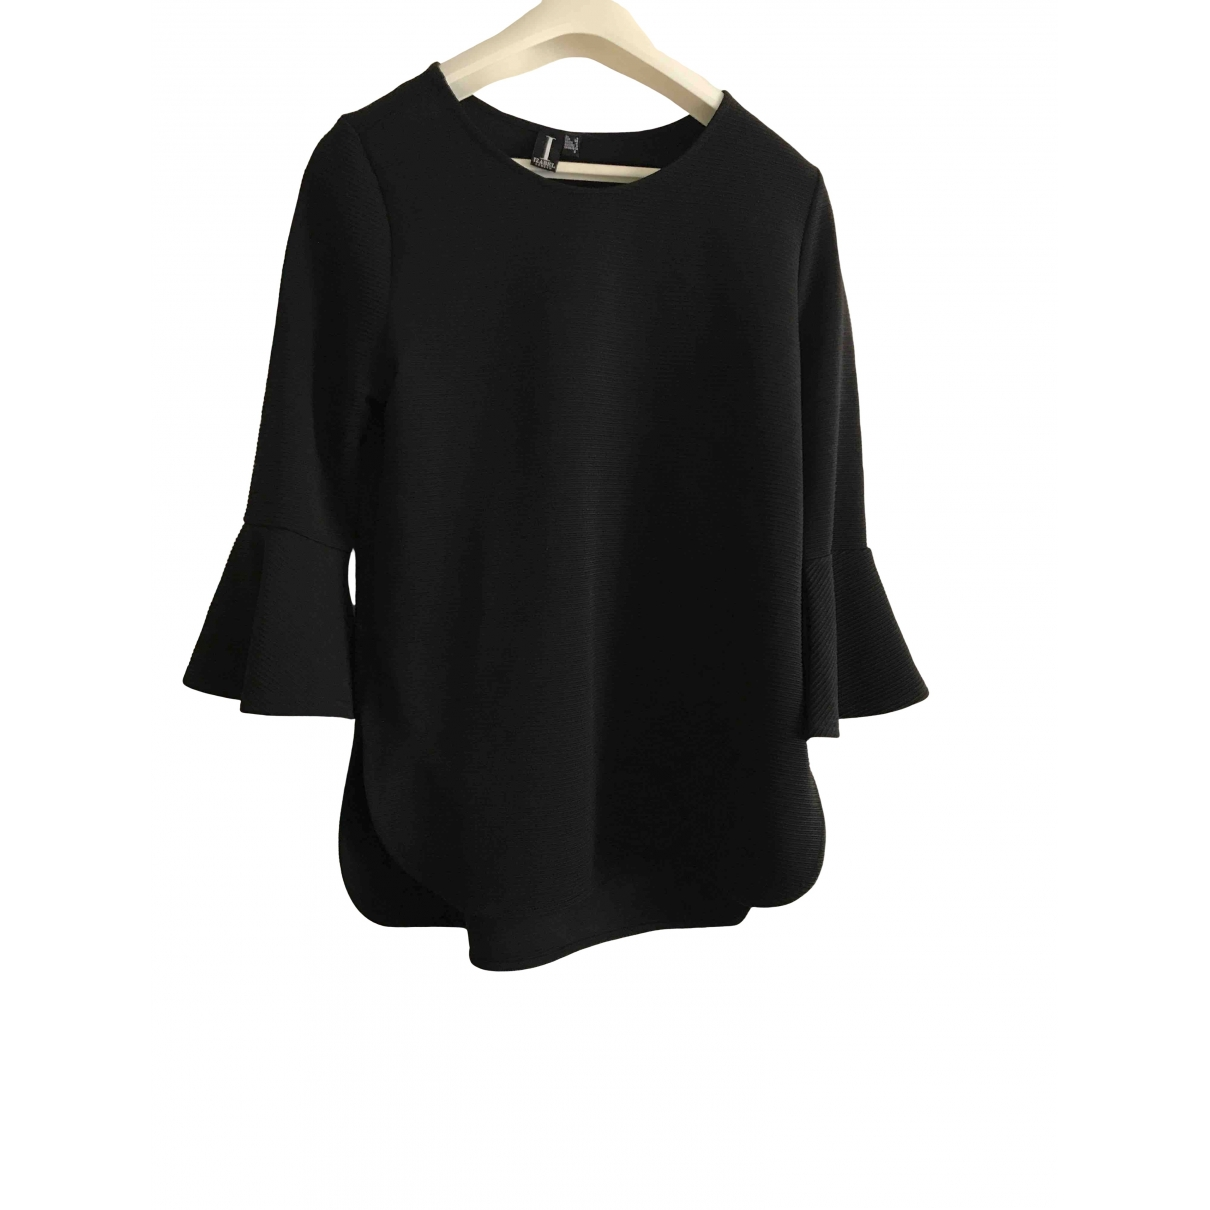 Non Signé / Unsigned \N Black  top for Women 8 UK